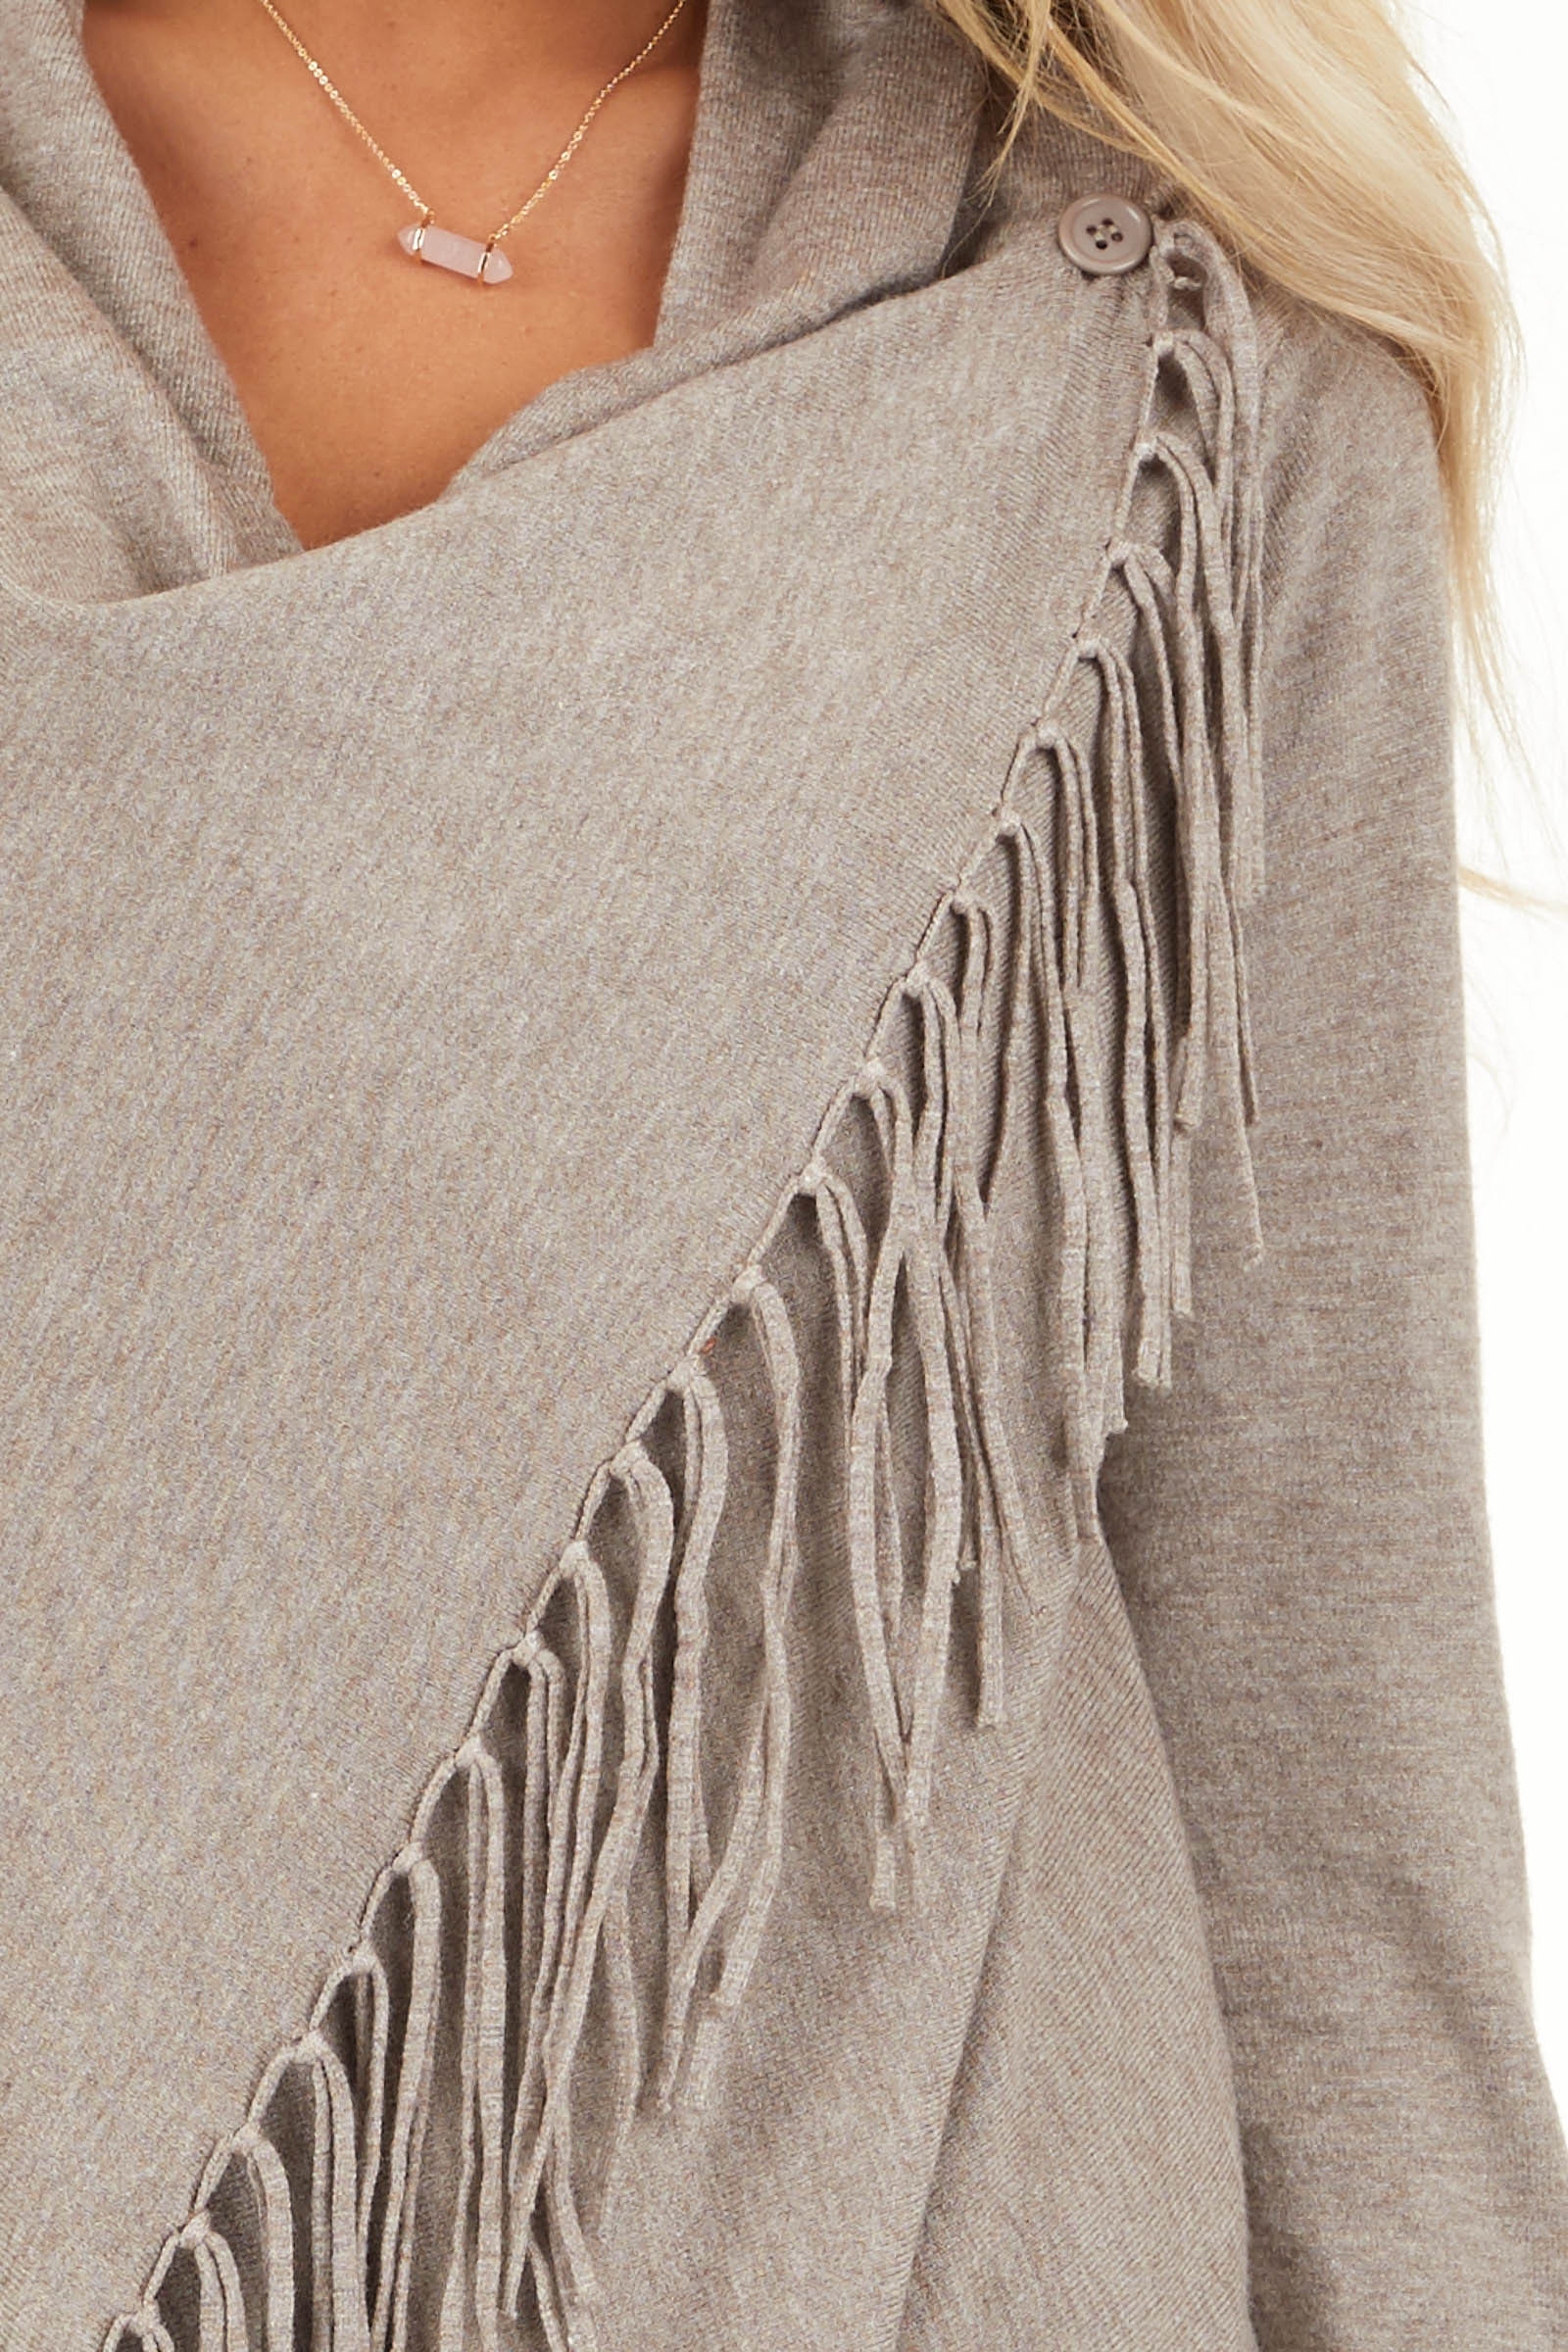 Oatmeal Cowl Neck Knit Poncho with Tassel Details detail